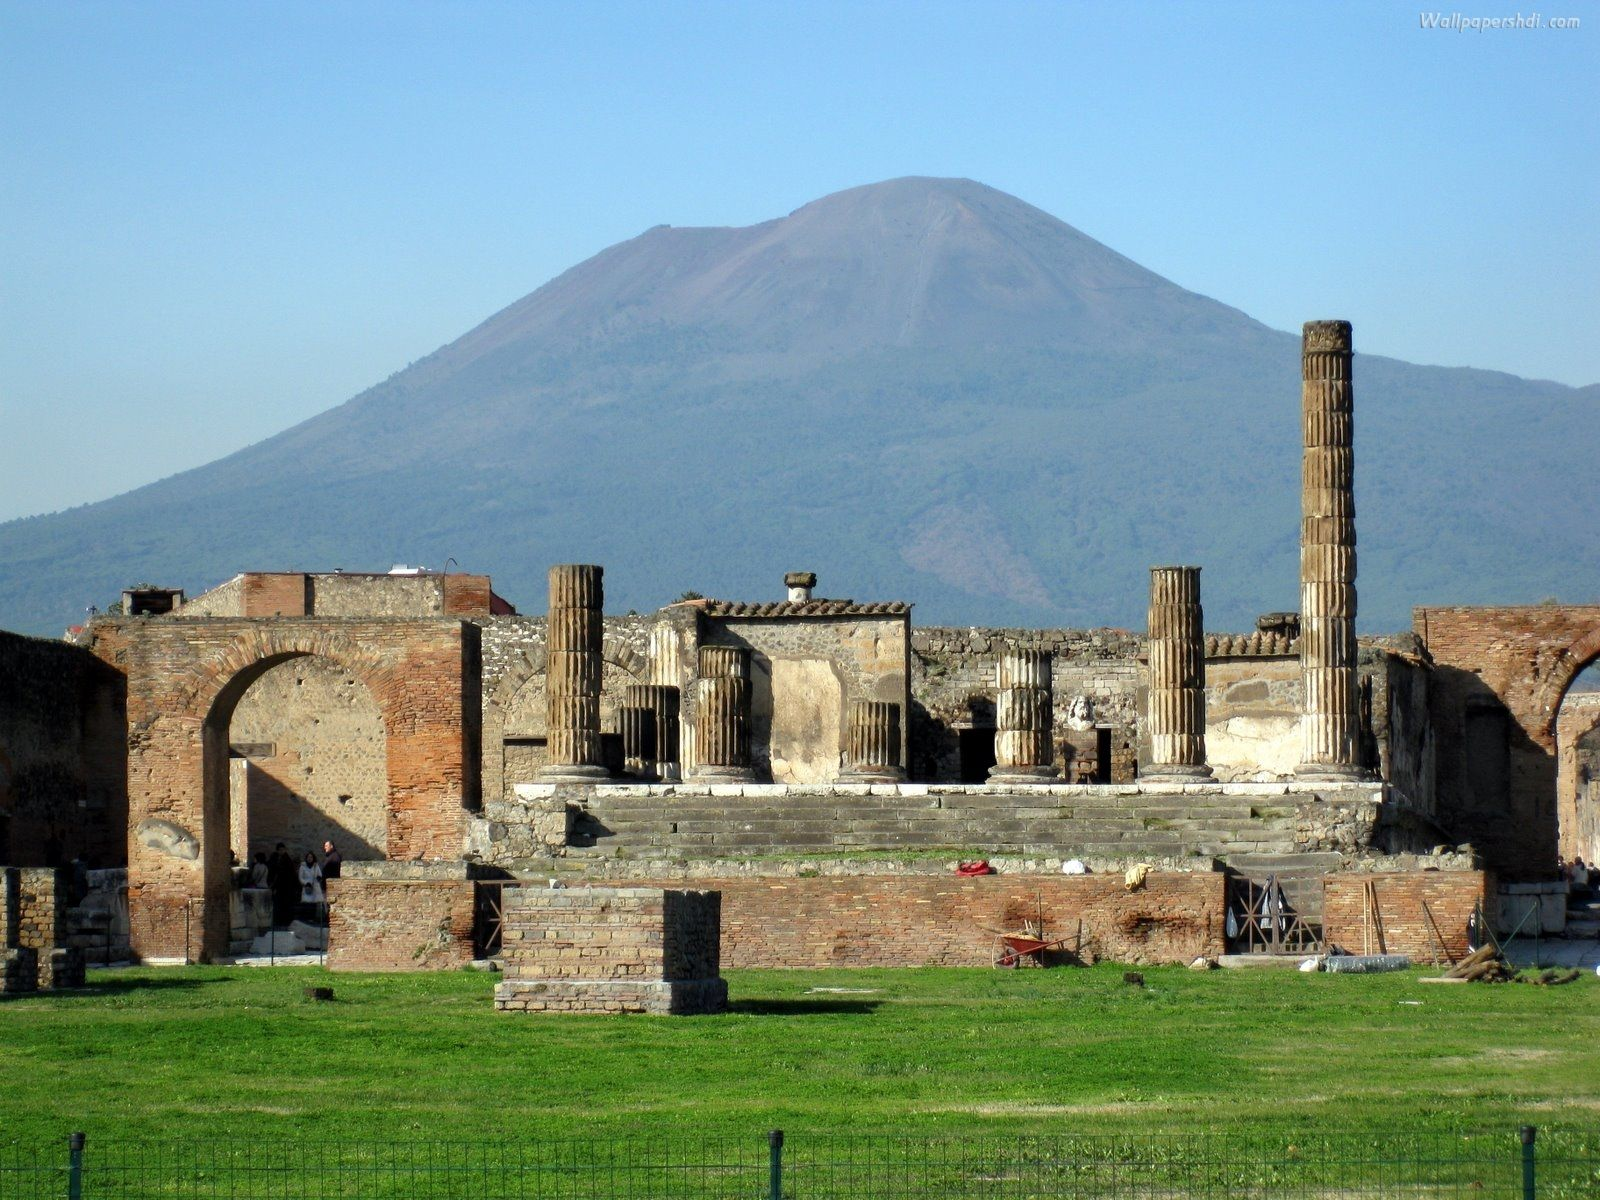 pompeii italy Pompeii italy wallpaper wallpaper hd for 1600x1200